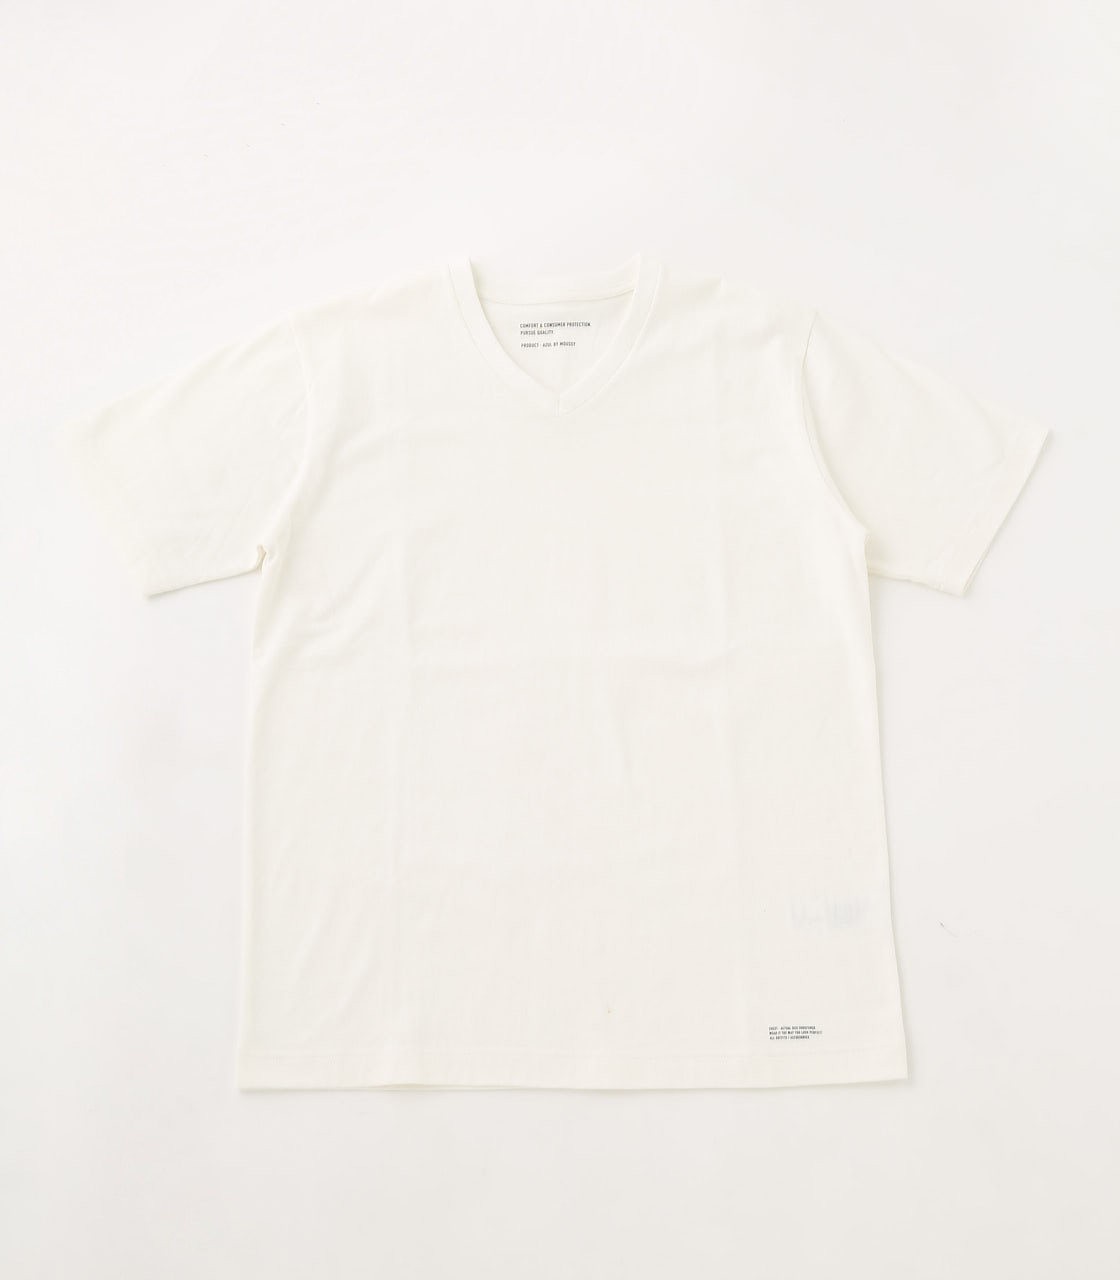 【AZUL BY MOUSSY】HEAVY WEIGHT Vネック T-SHIRT 詳細画像 WHT 1